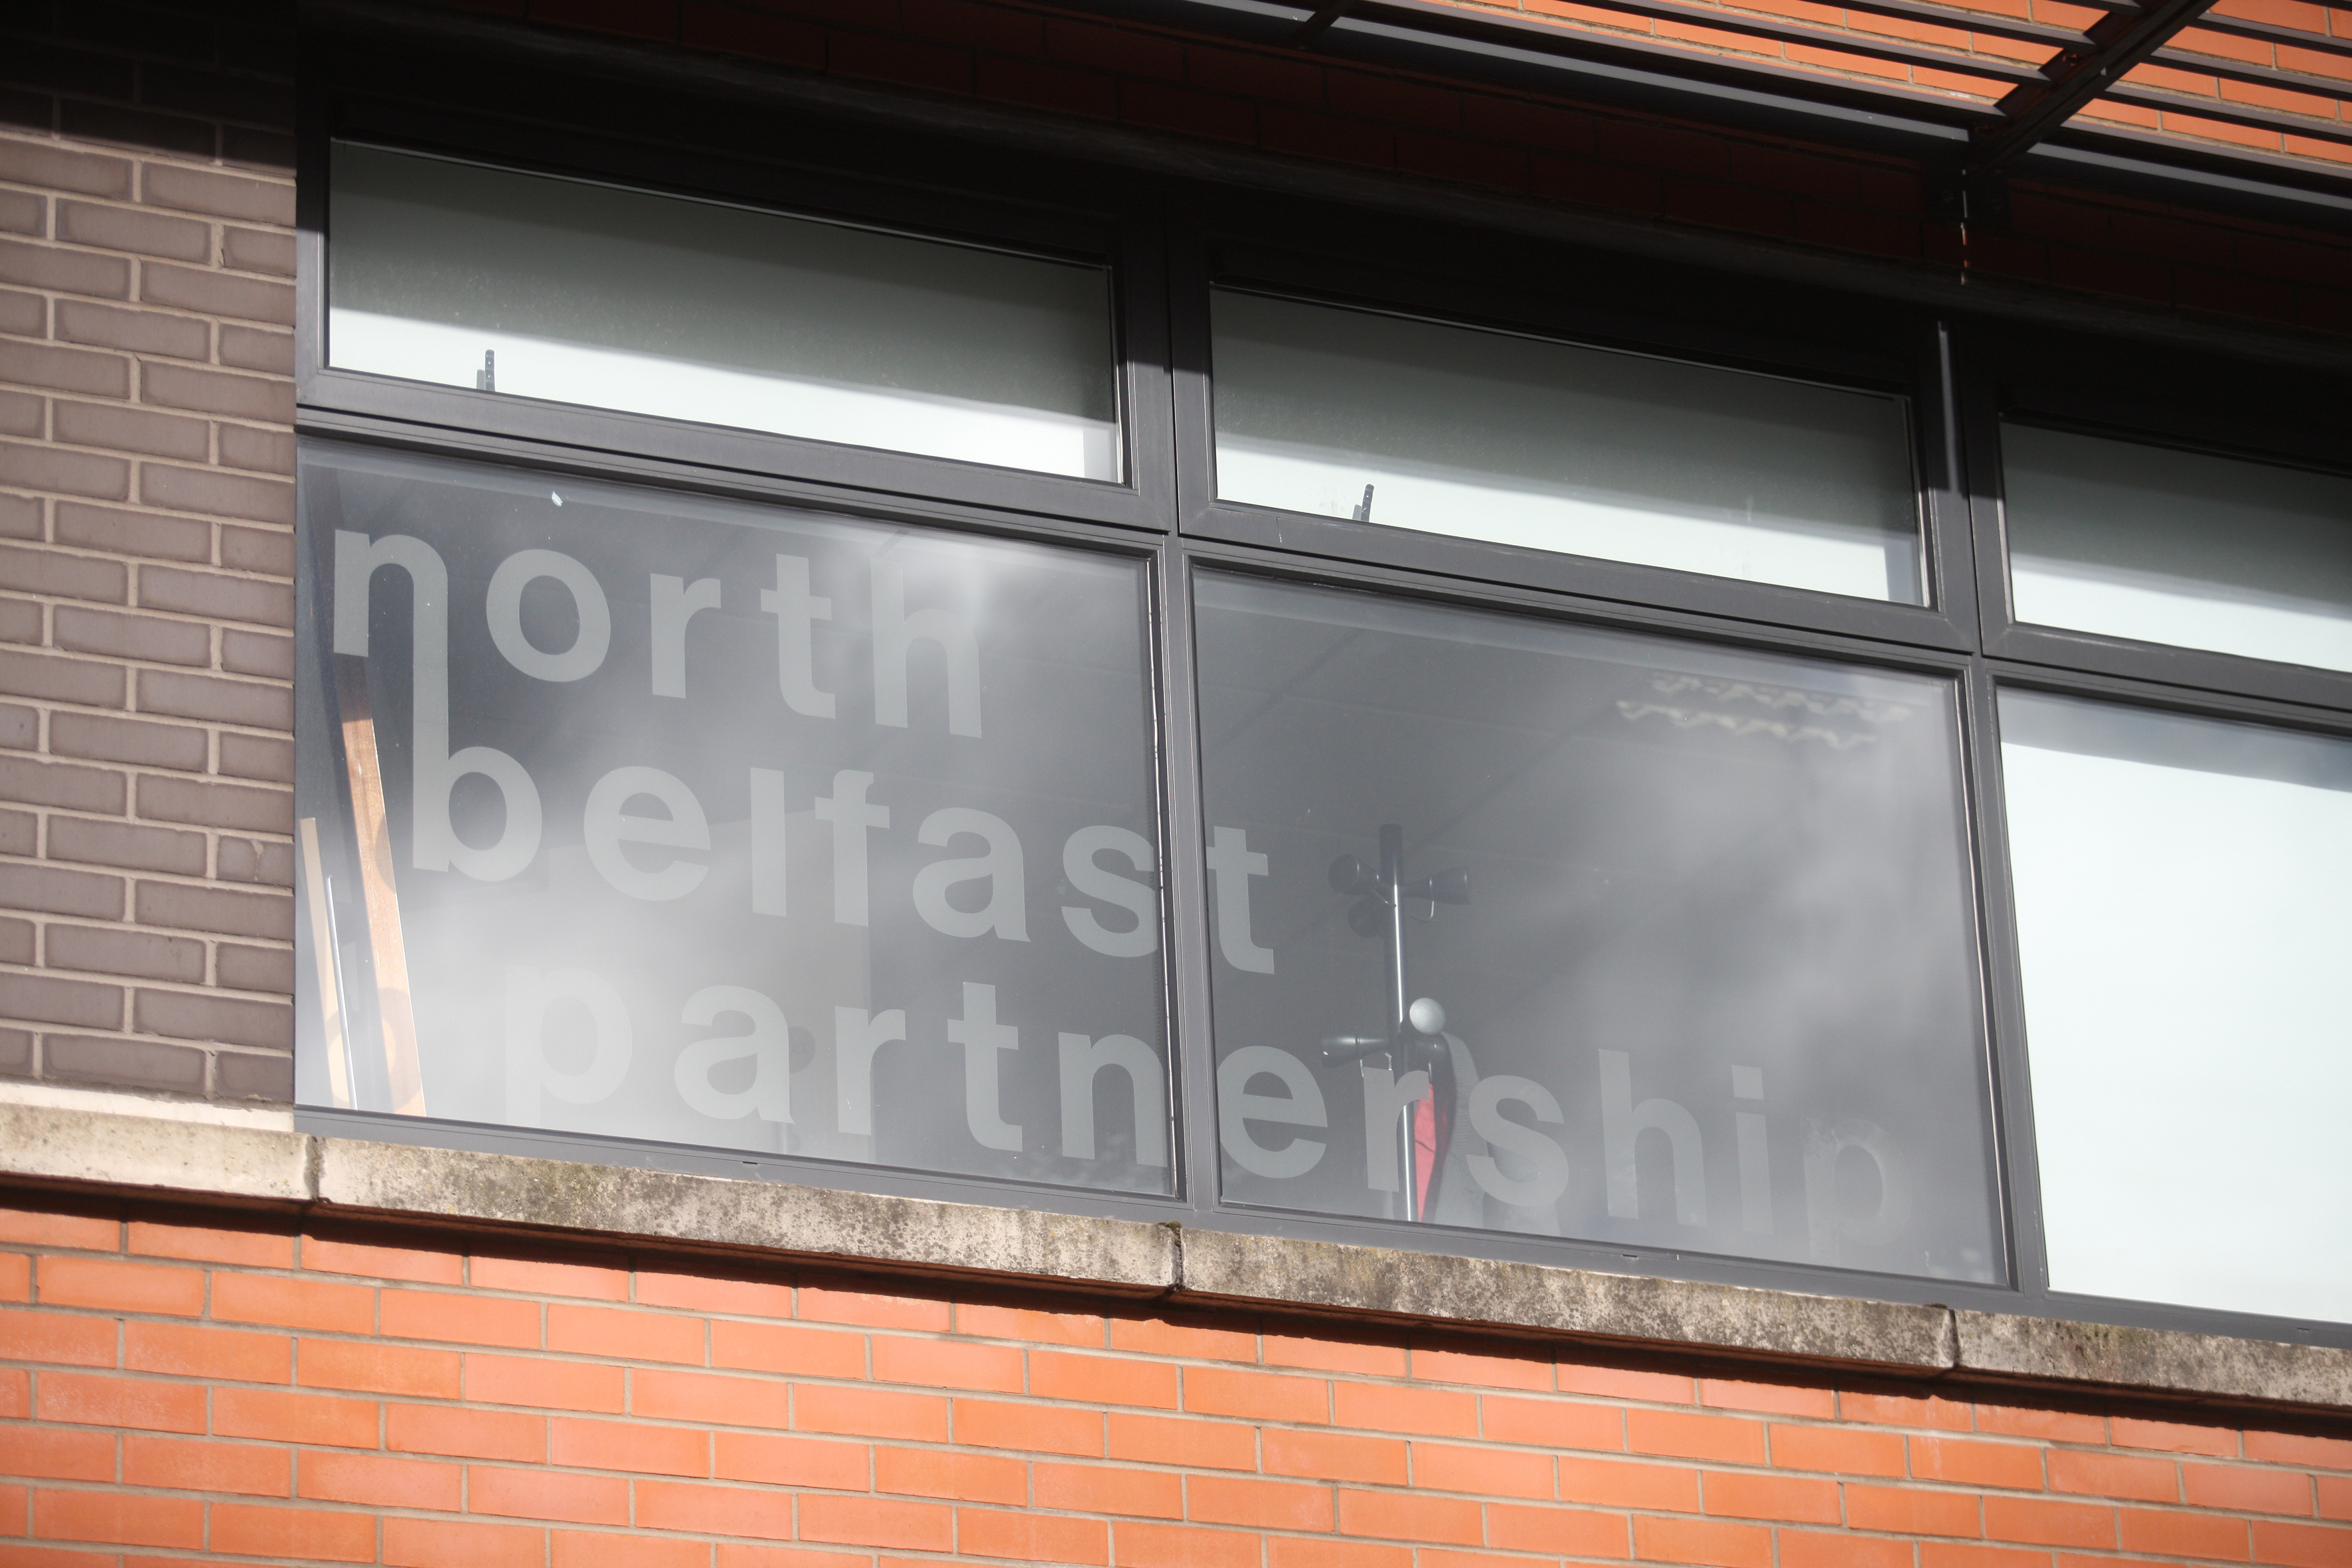 OFFICES: The North Belfast Partnership Board has folded